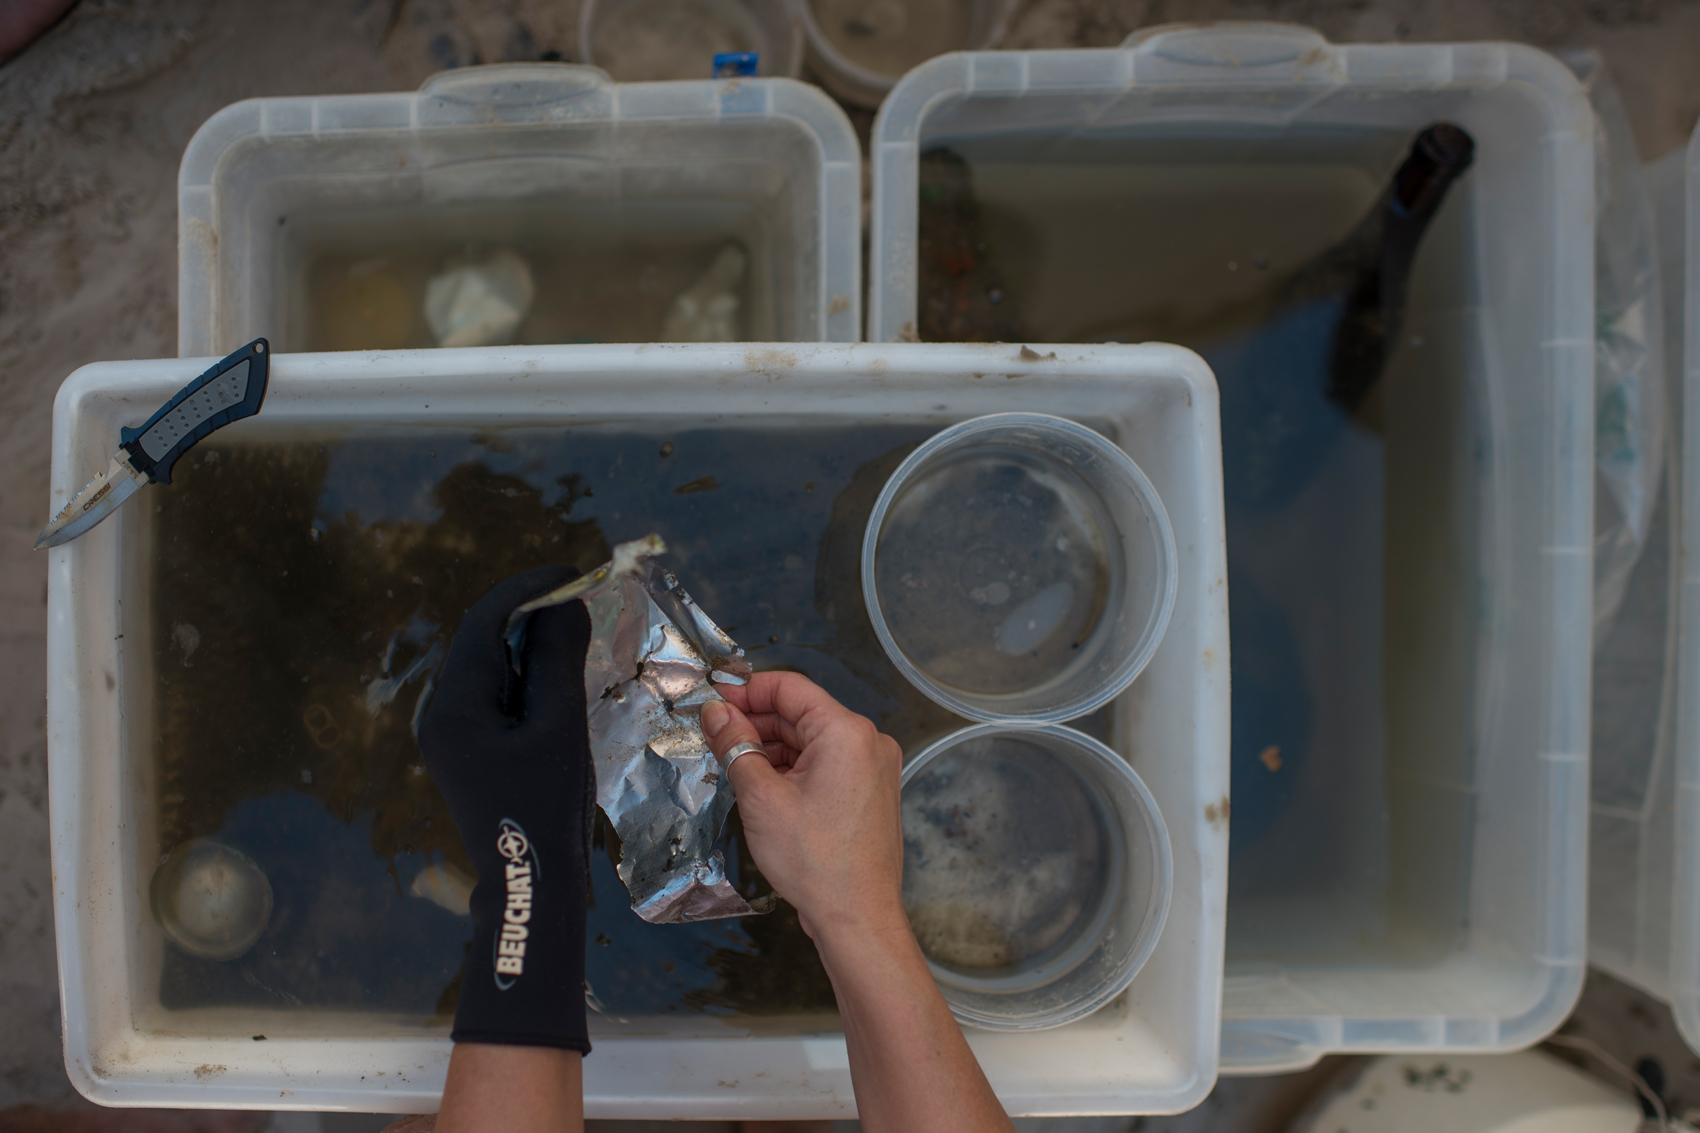 Provided with gloves and knives, volunteers are taught to separate animals into different containers according to the species found. Many times, these creatures find a home in marine debris, and it wouldn't be ethical to take them from their shelter and put them with potential predators. Ed strongly explain this values to anyone who makes themselves available to help.